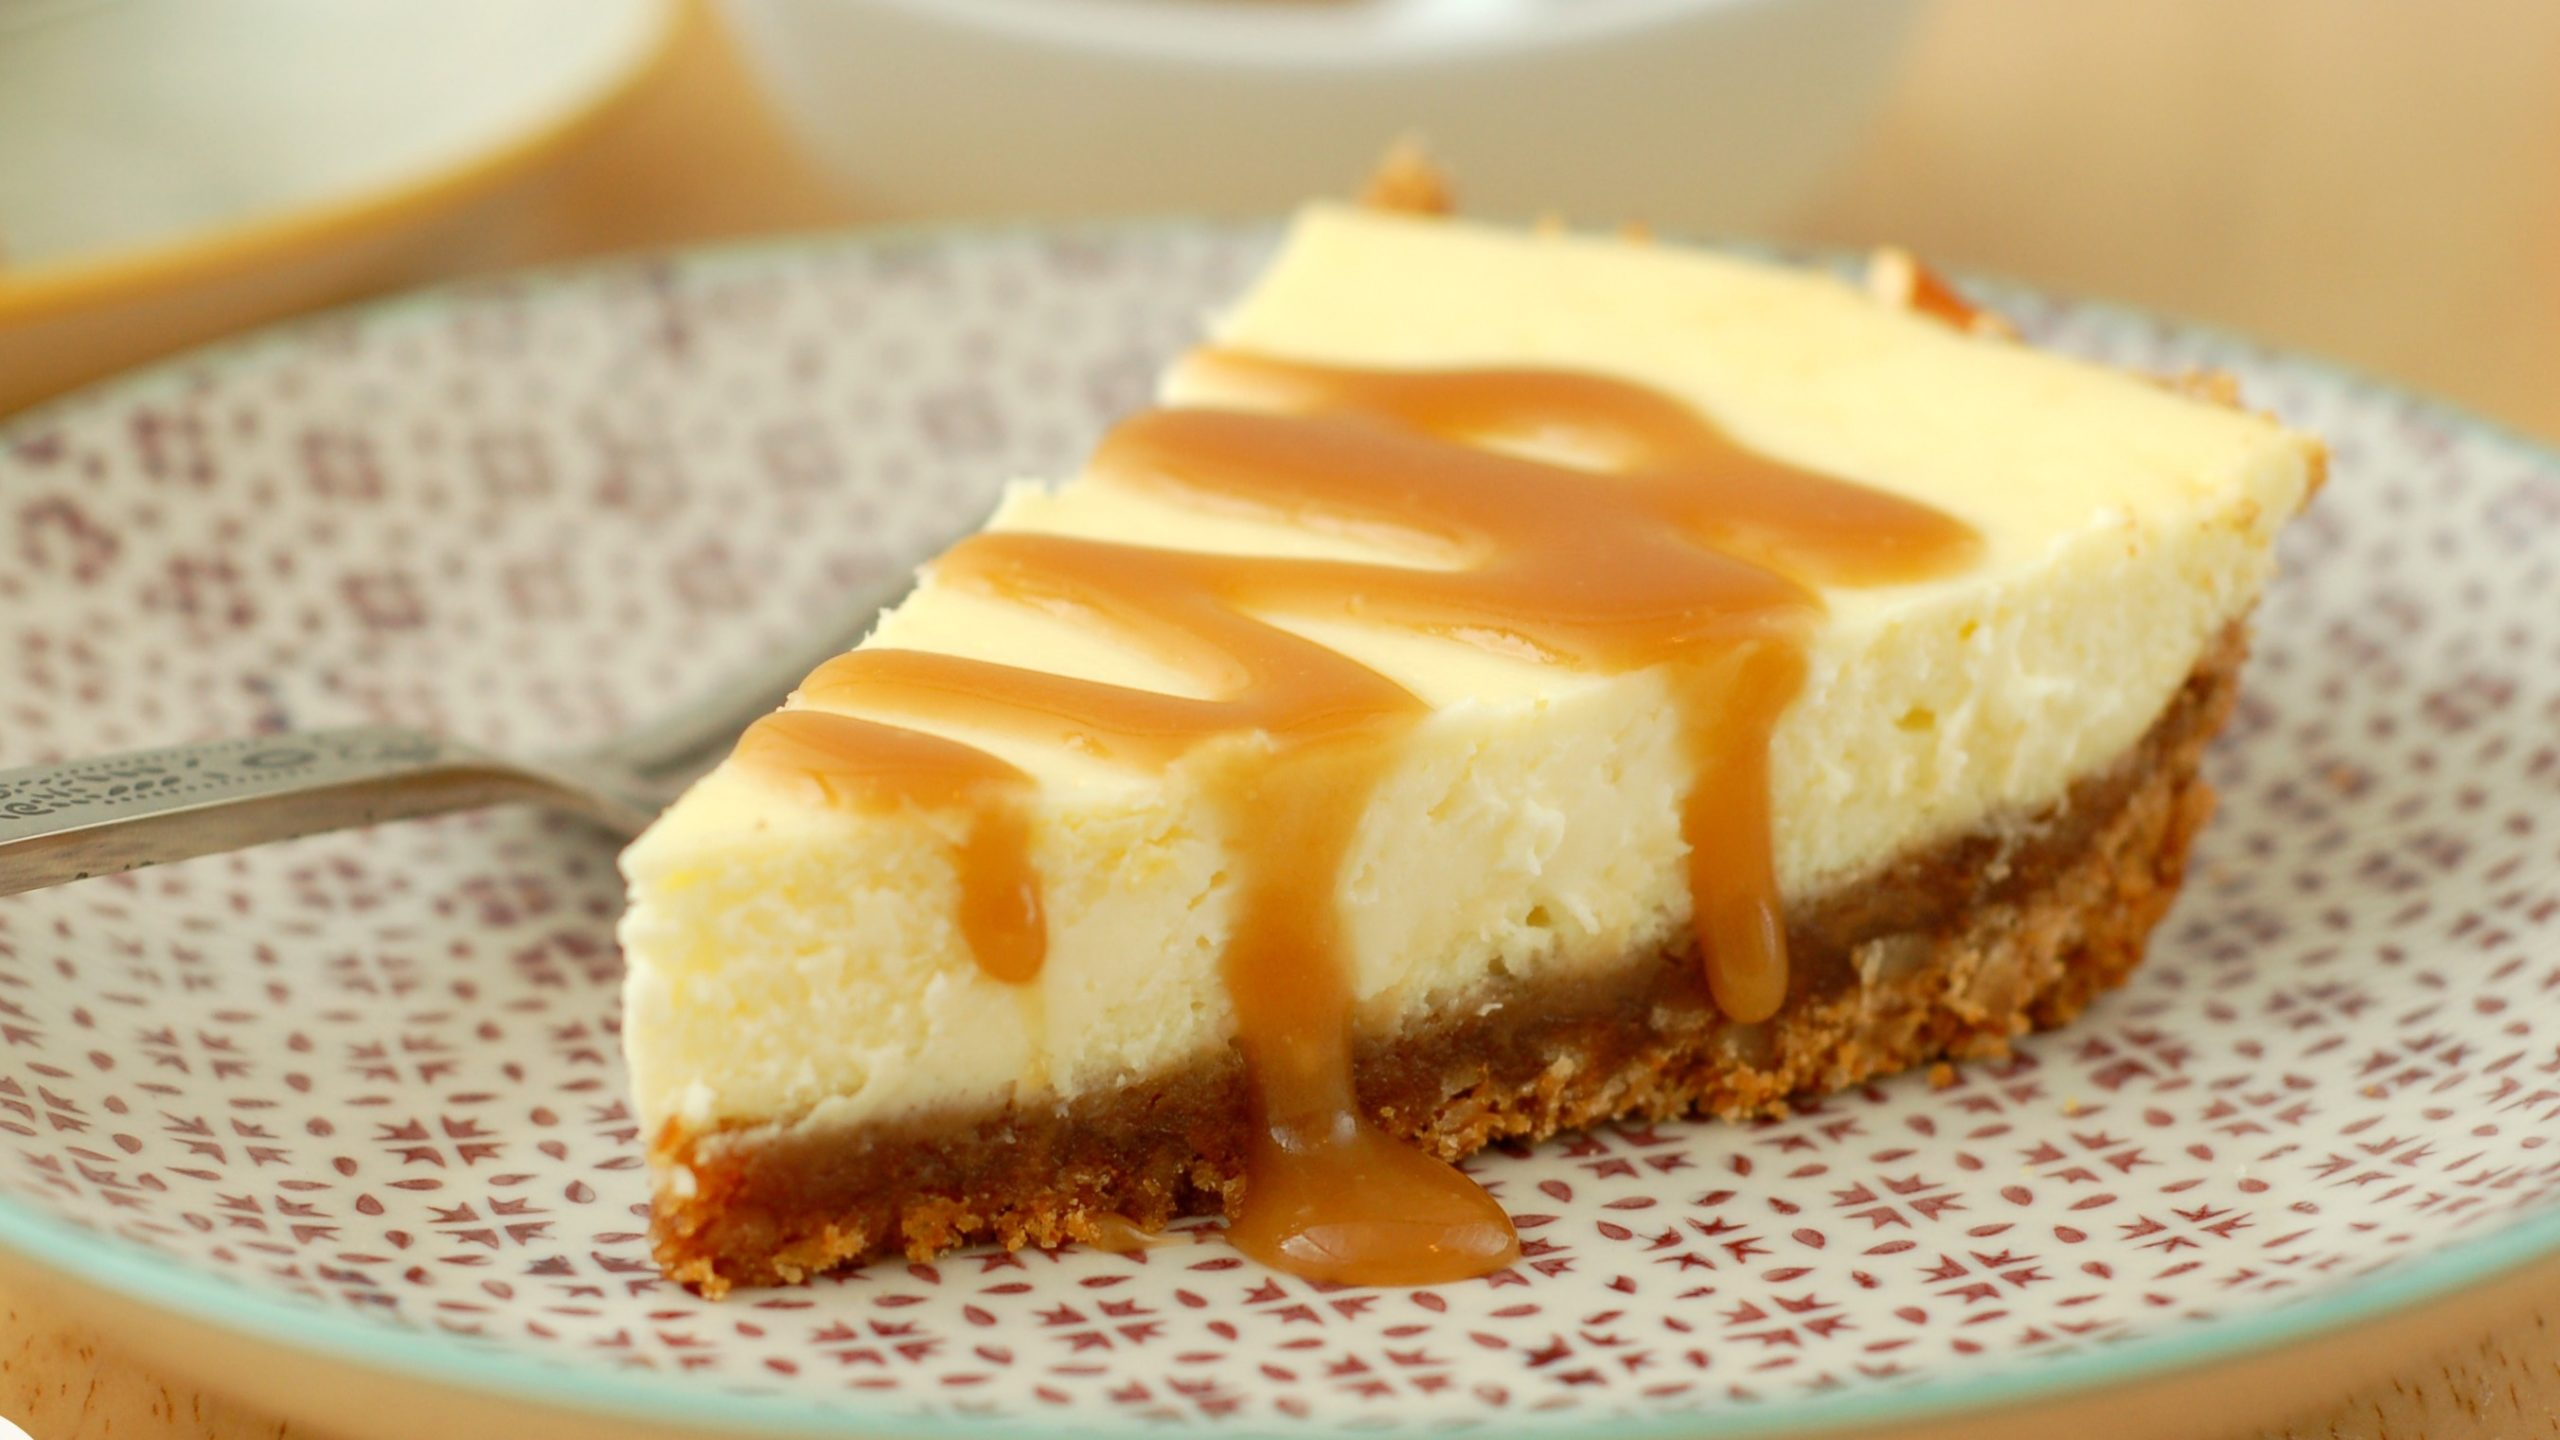 ukusan-ciz-kej-recept-cheesecake